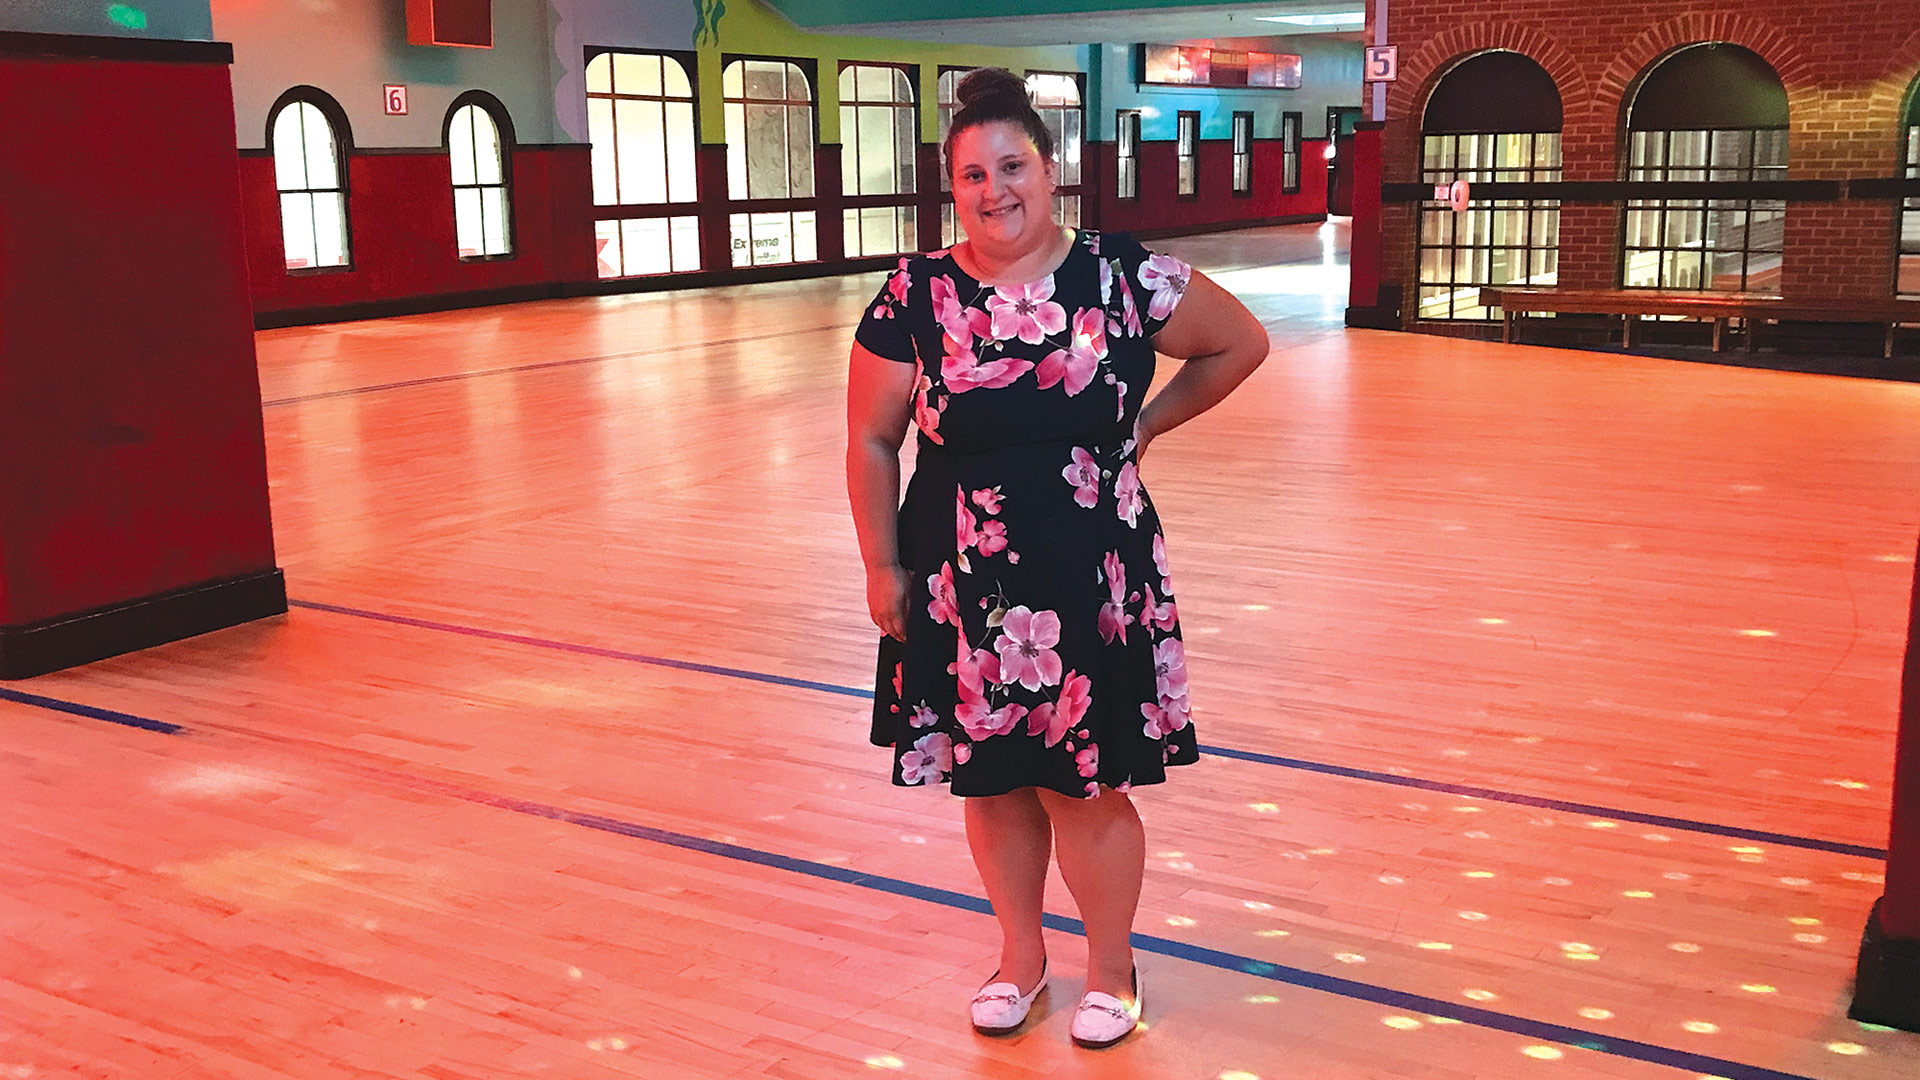 The disco lights are on again at Interskate 91, and Sarah O'Brien is expecting the crowds to return.